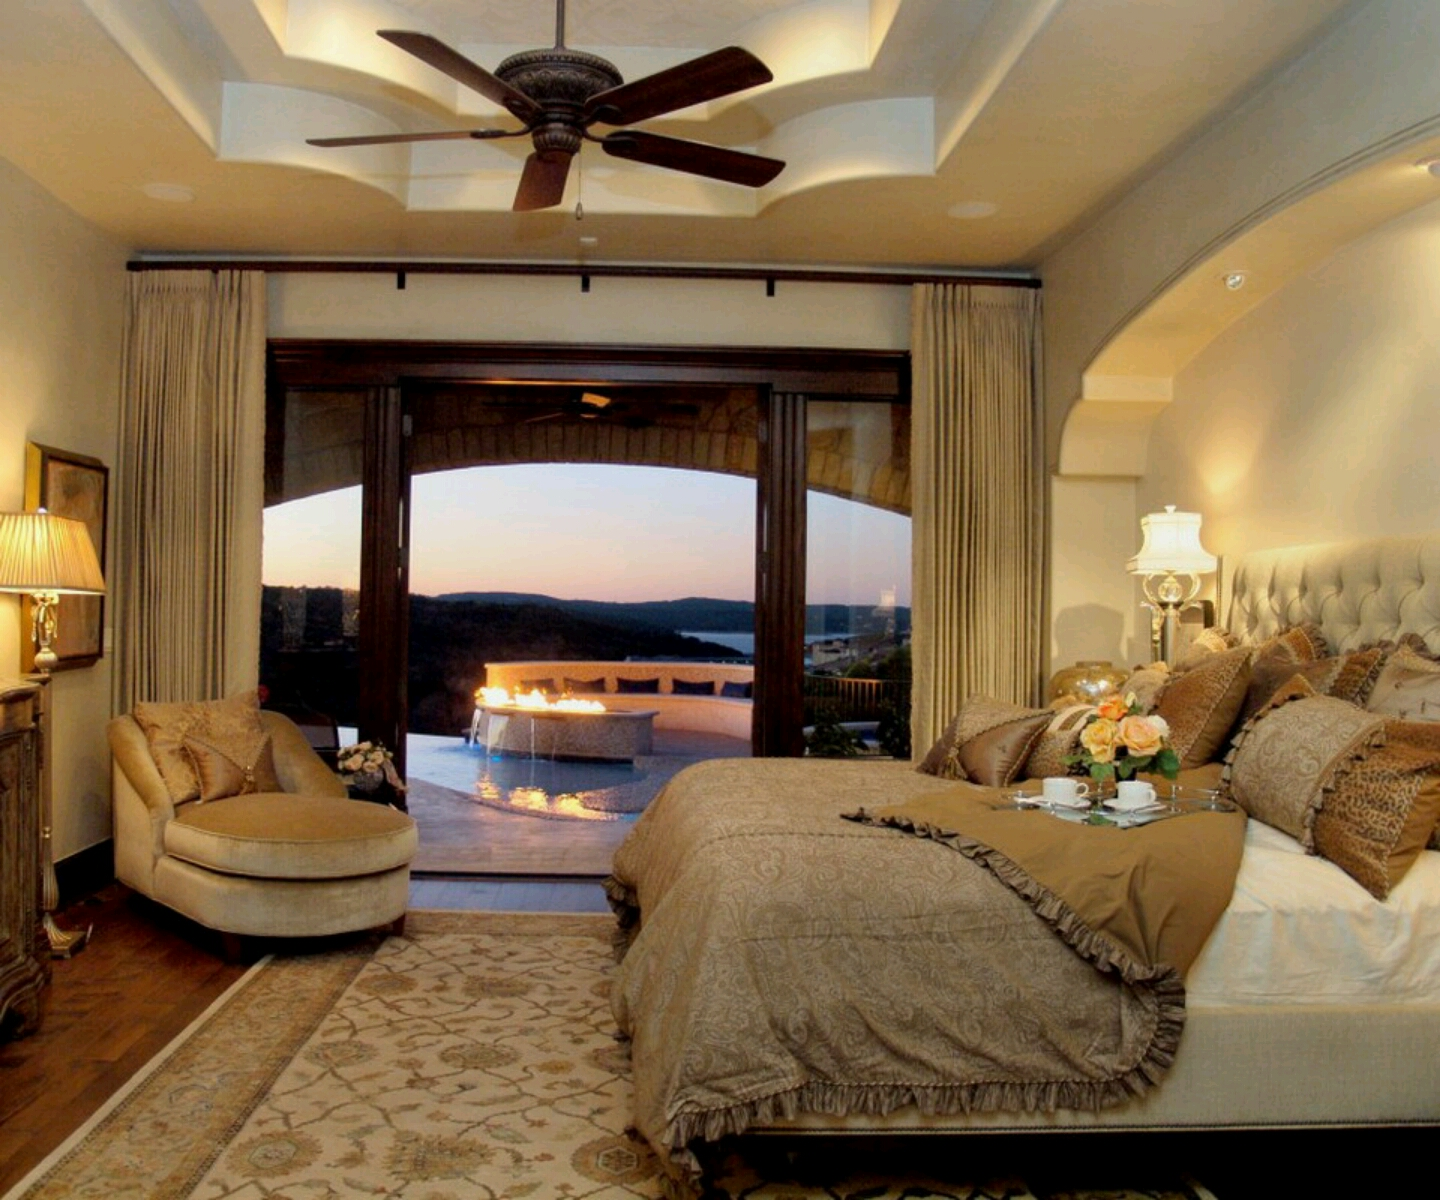 New home designs latest modern bedrooms designs ceiling for Latest bedroom decorating ideas